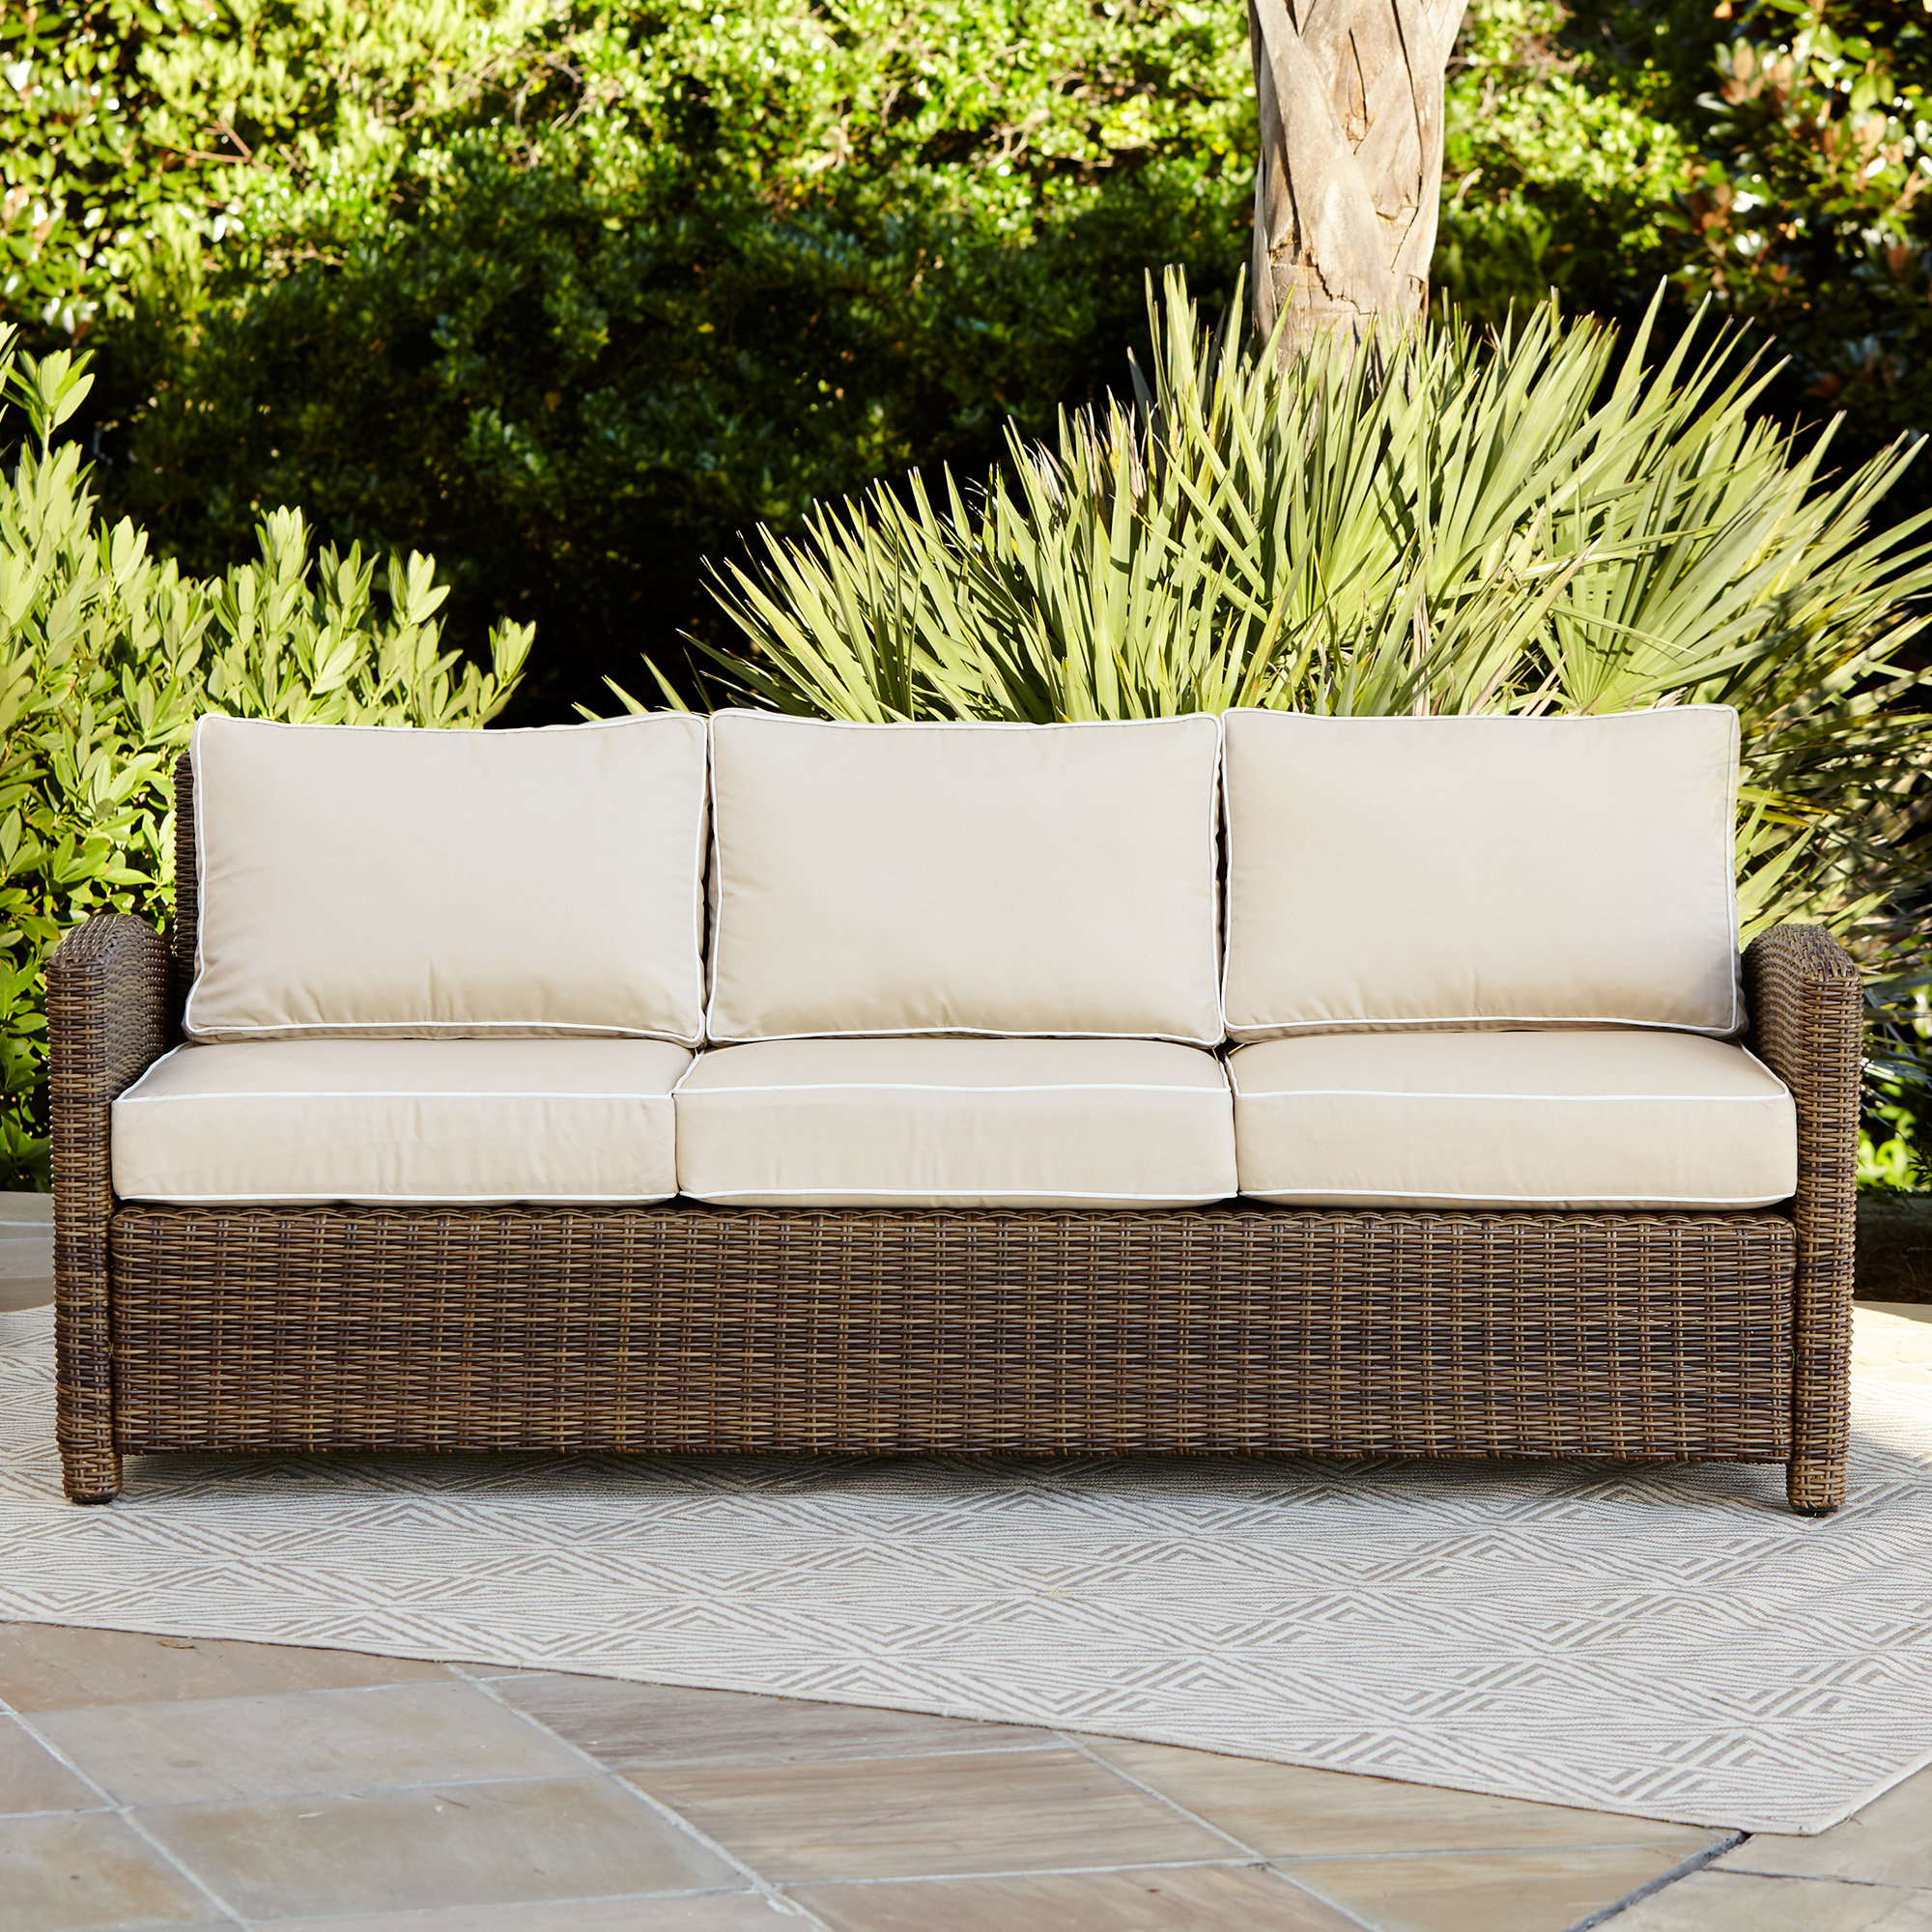 Fashionable Stockwell Patio Sofas With Cushions For Lawson Patio Sofa With Cushions (View 4 of 20)